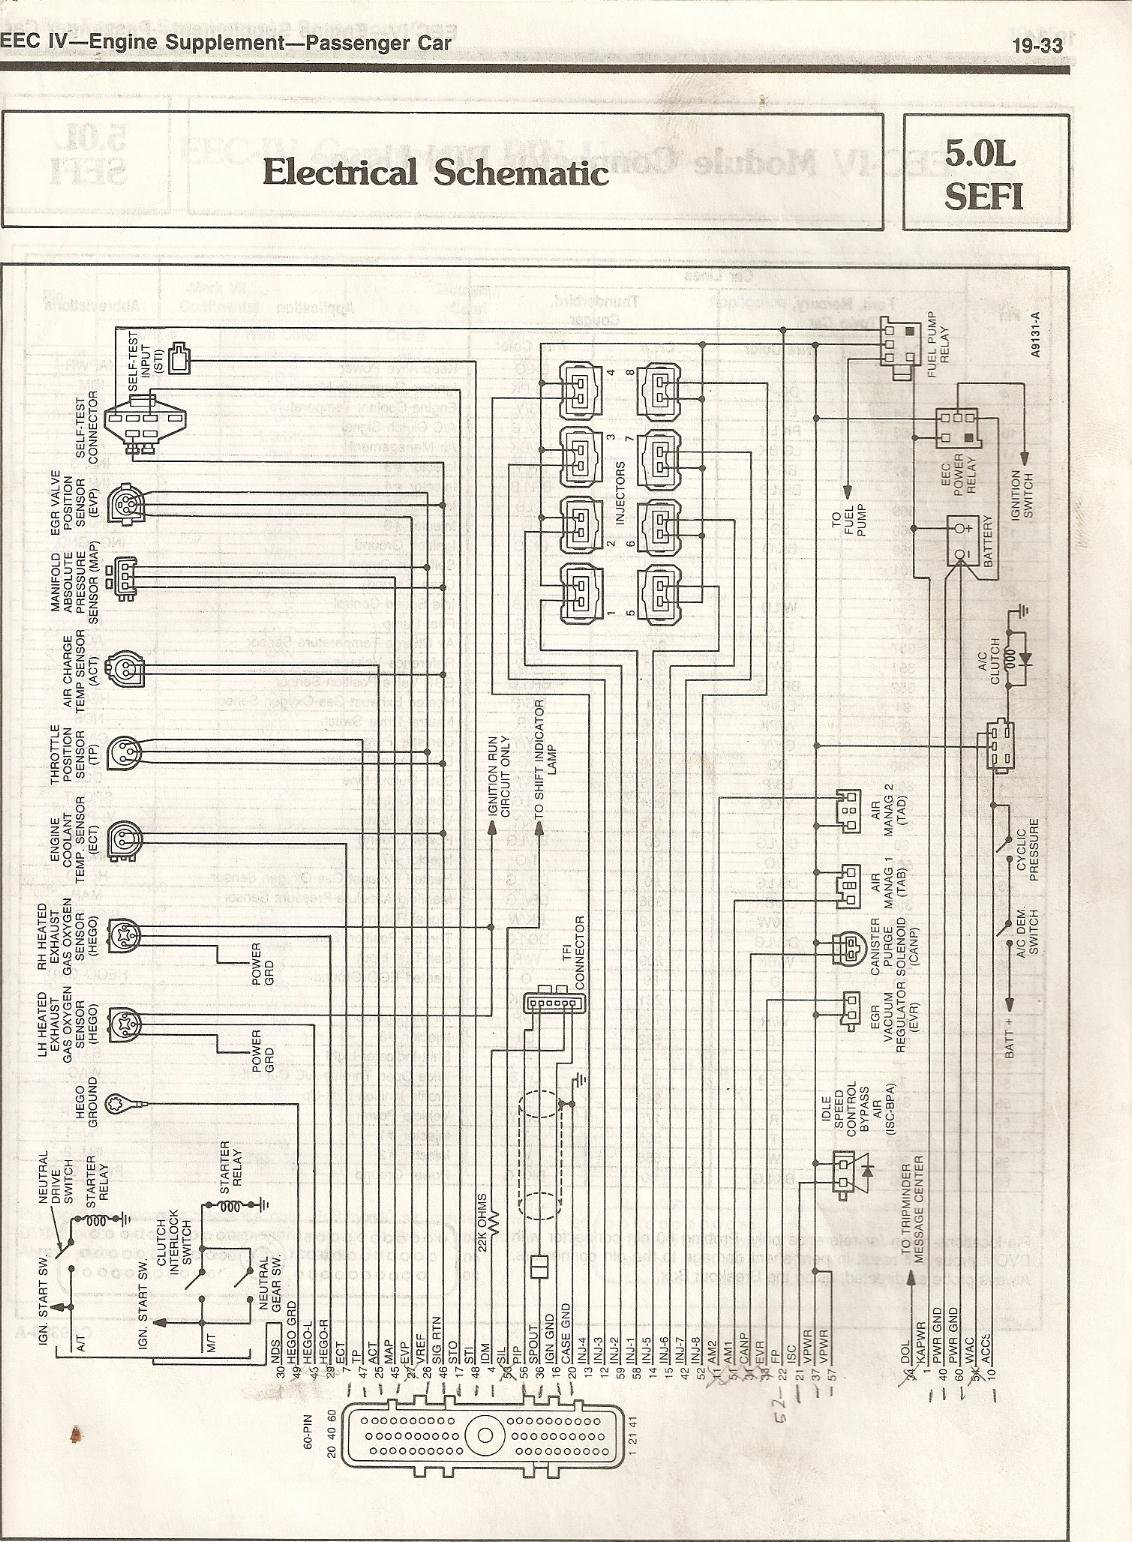 Ford 5 0 Efi Wiring Harness 27 Diagram Images 302 Engine 495529d1454445979 Swap Computer Pins 1986 50 Eec Pinout Iv